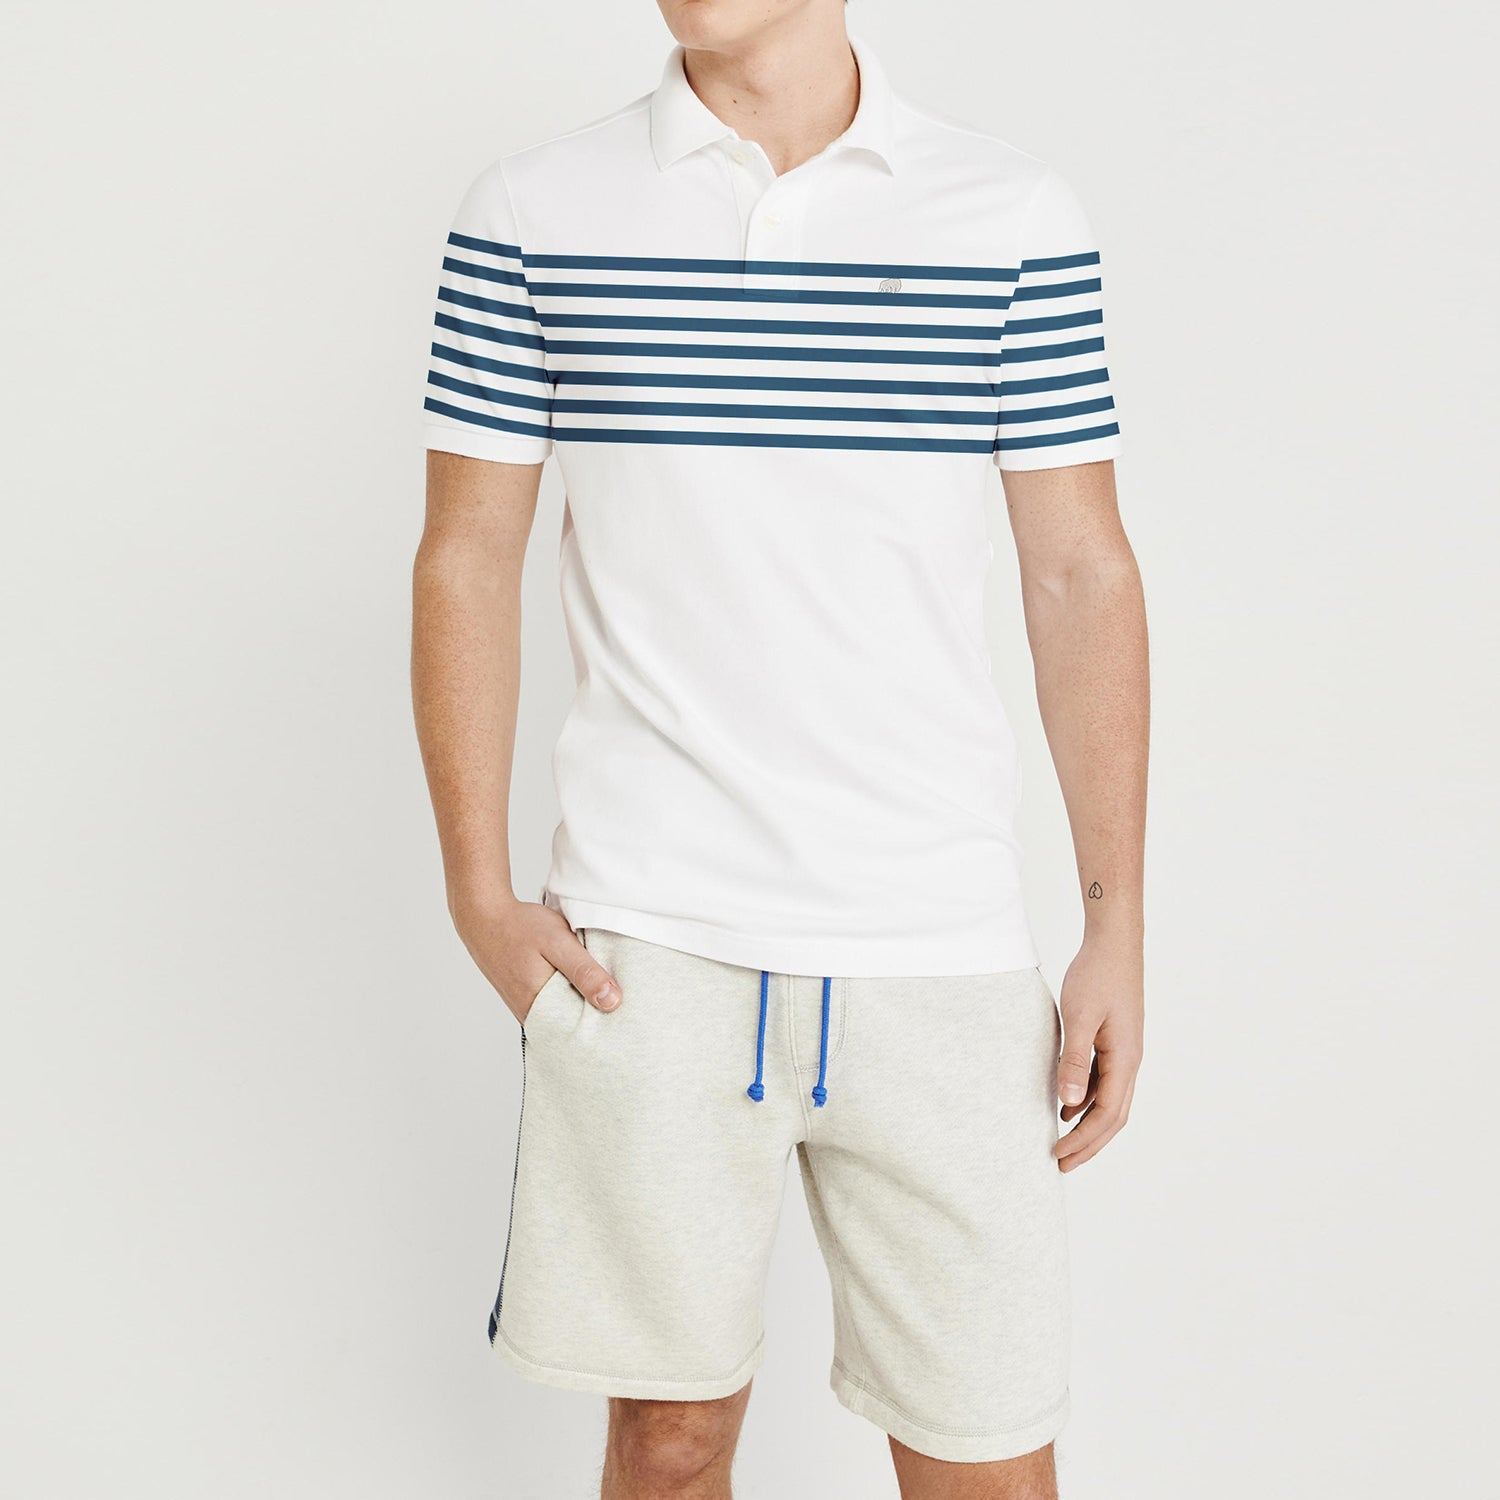 brandsego - Banana Republic Short Sleeve P.Q Polo Shirt For Men-White With Blue Stripes-NA8089